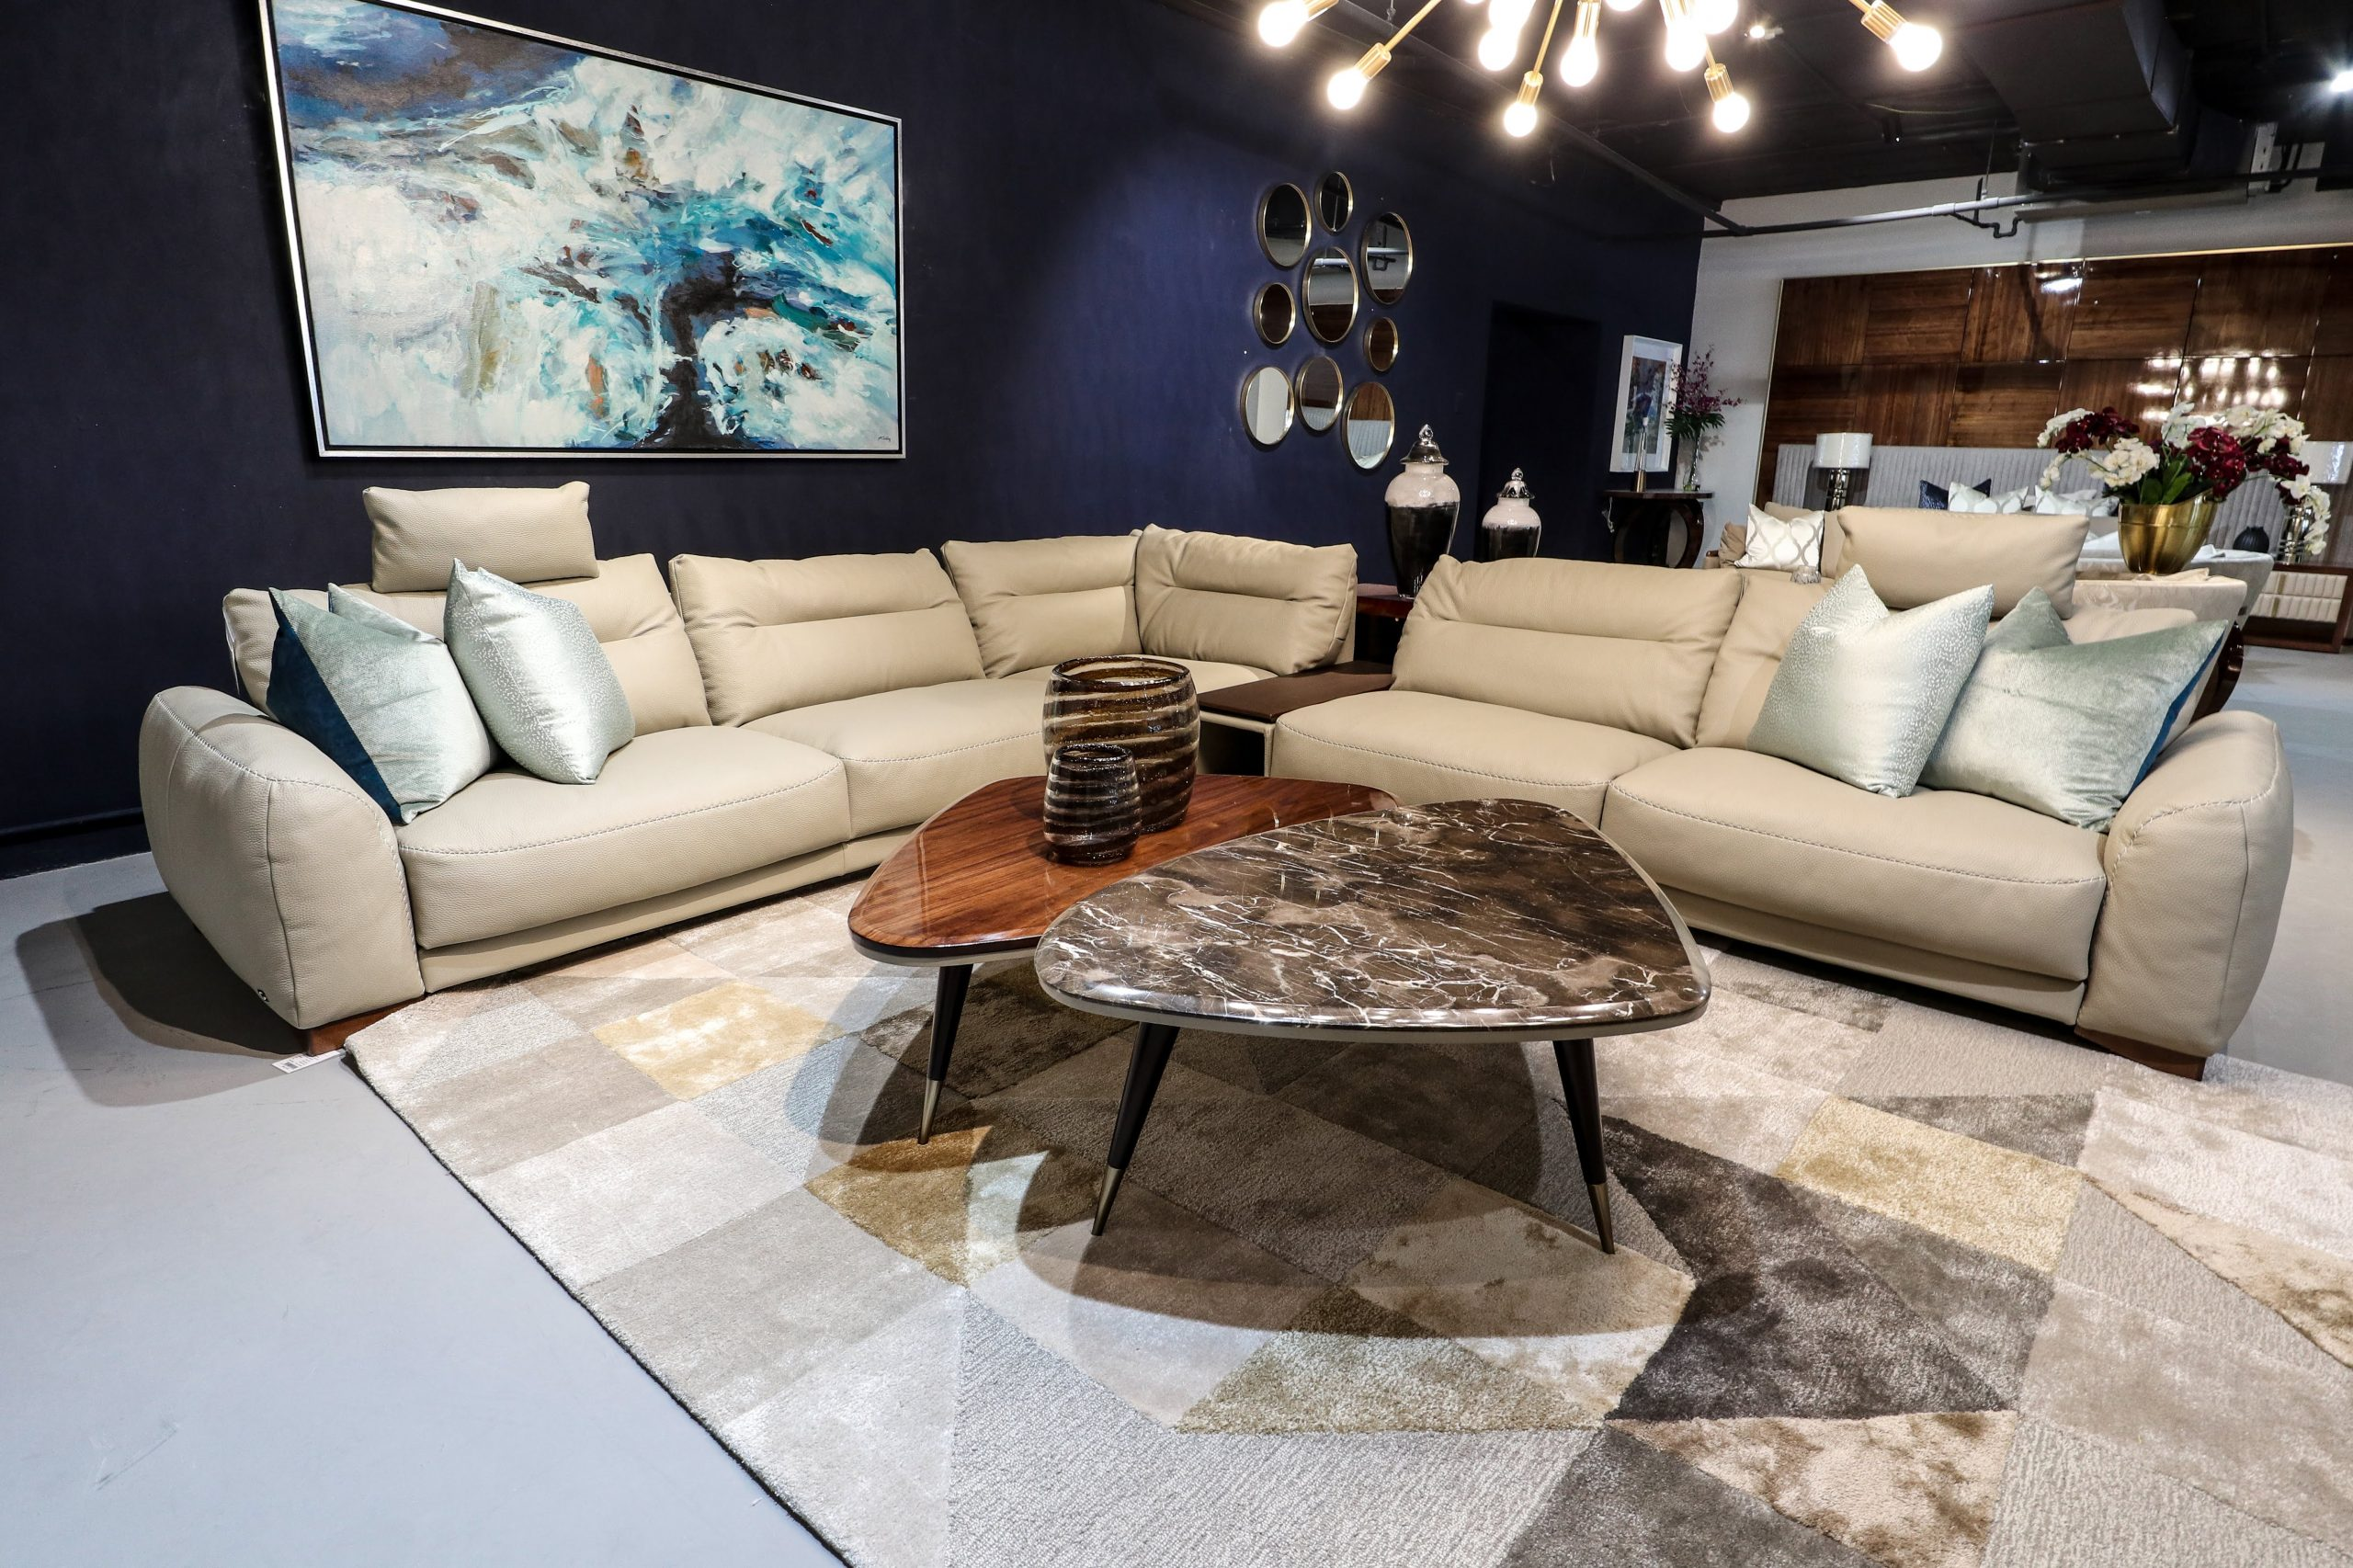 HOUSE HAVEN PRIVE FURNITURE 37